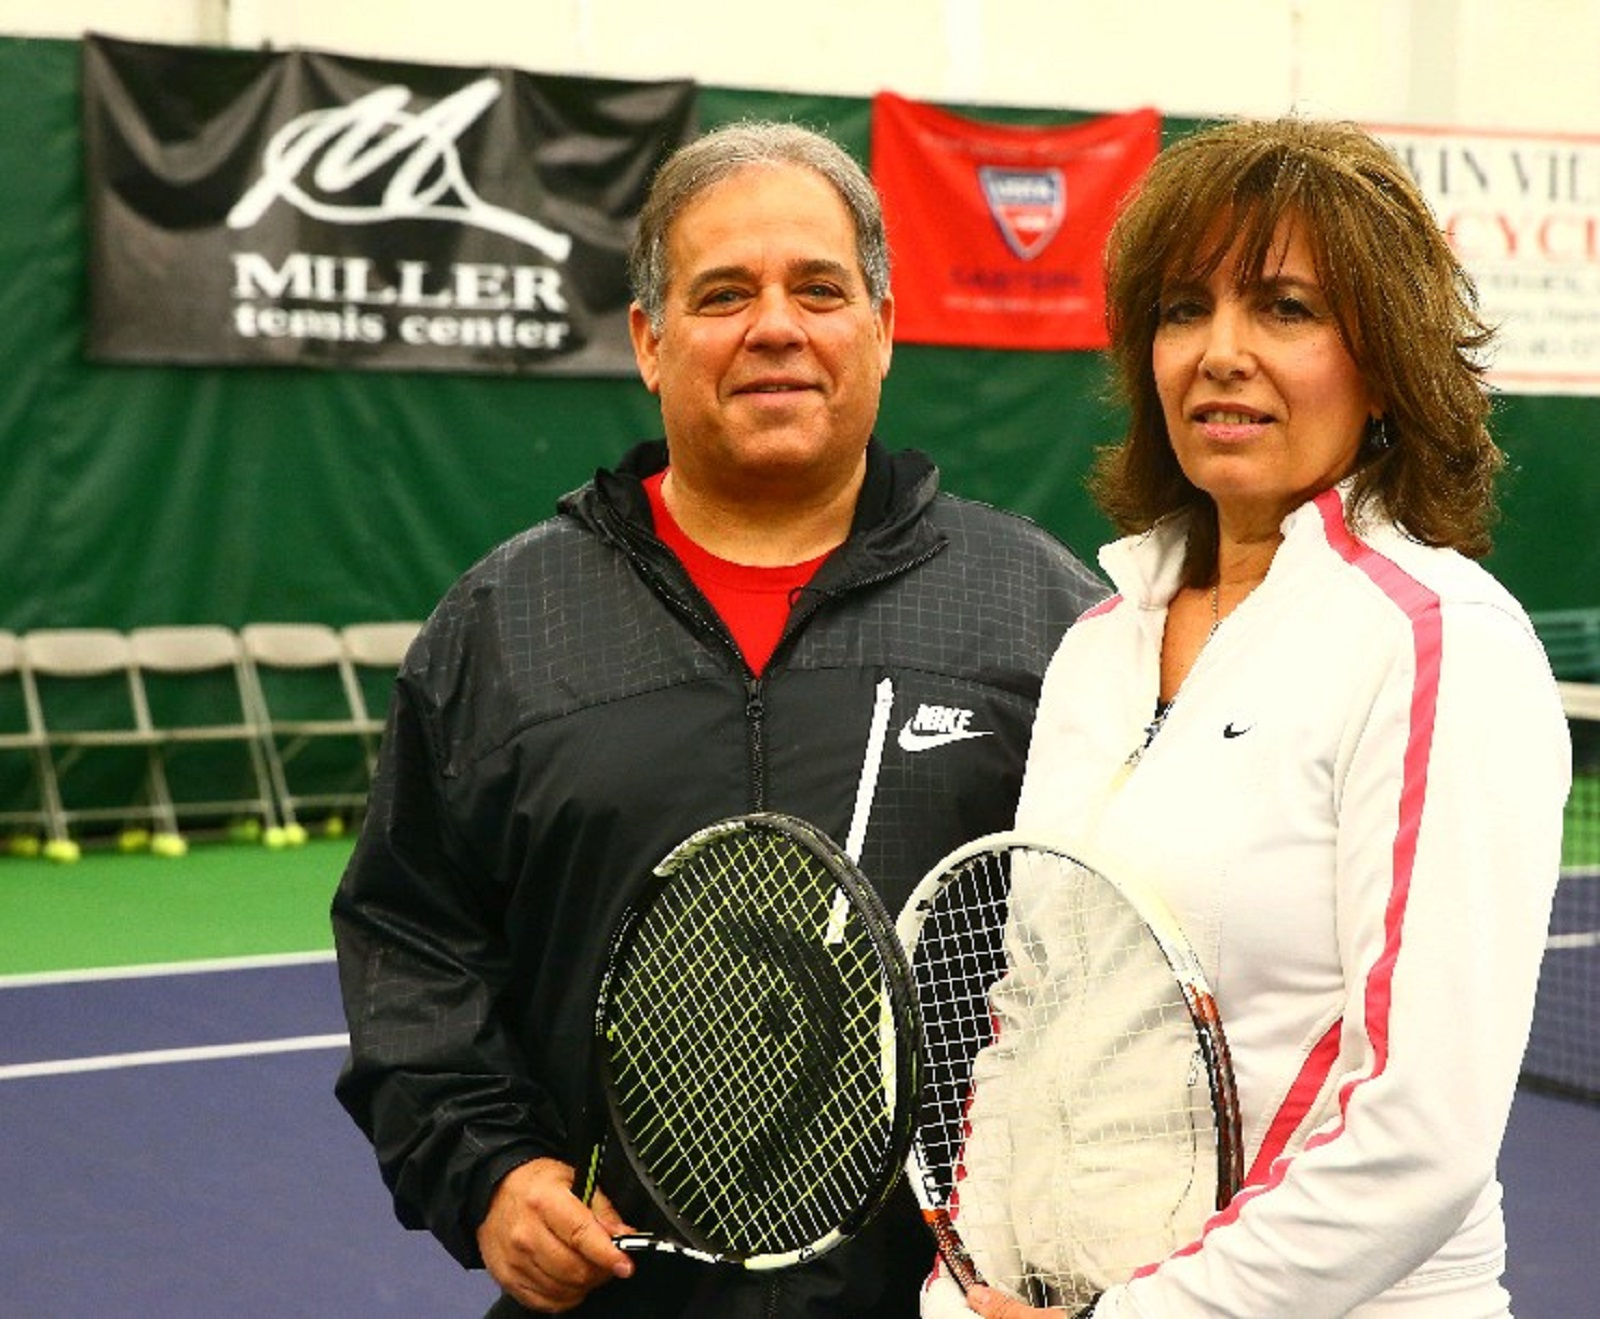 Todd and Debbie Miller bought Amherst Hills Tennis Center a decade ago, renamed it and continue to update its programs and professional coaching staff. (John Hickey/Buffalo News)